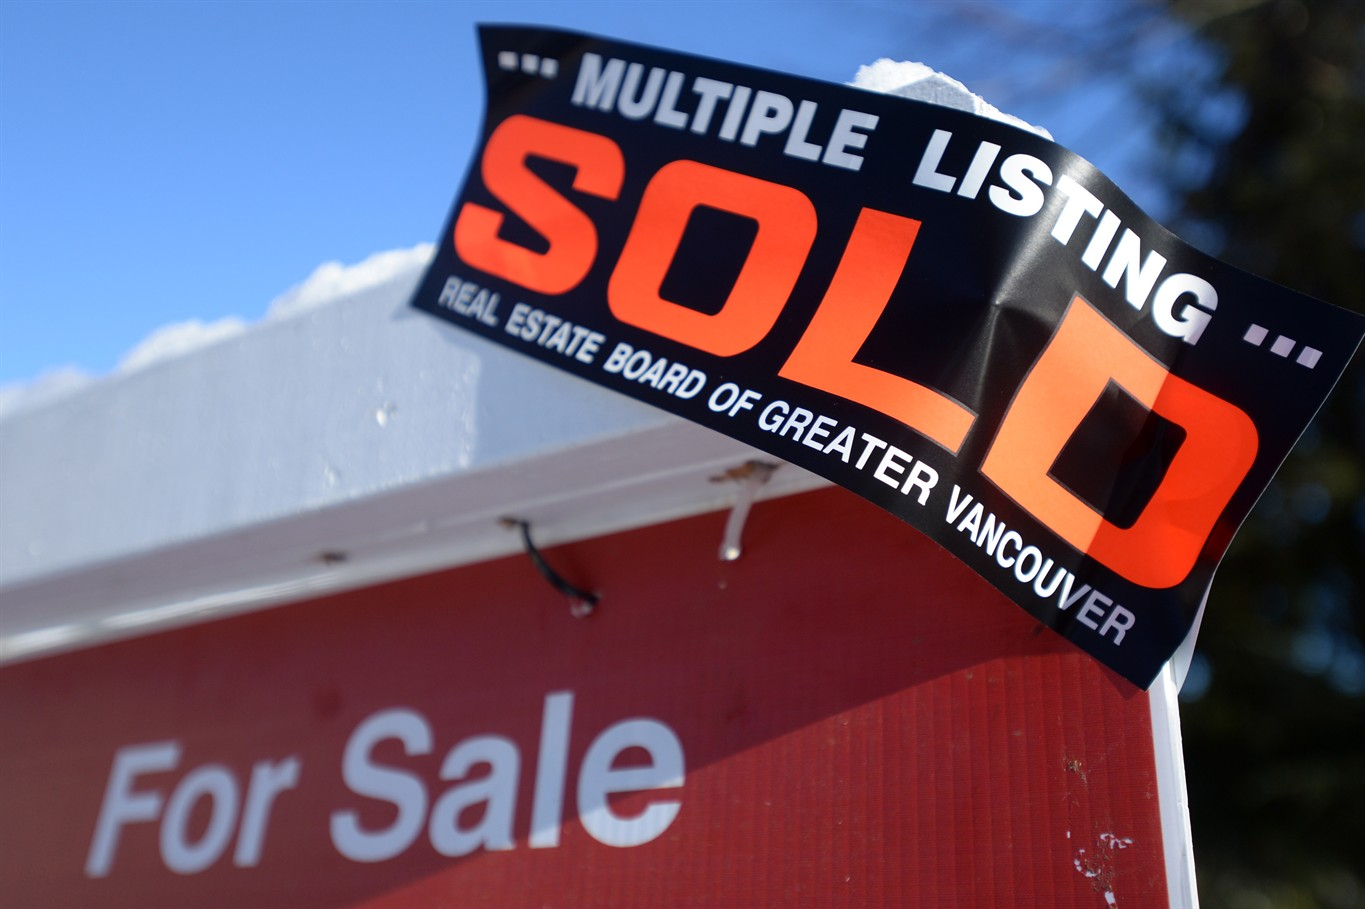 Home sales down by 8% but market still red hot: BCREA